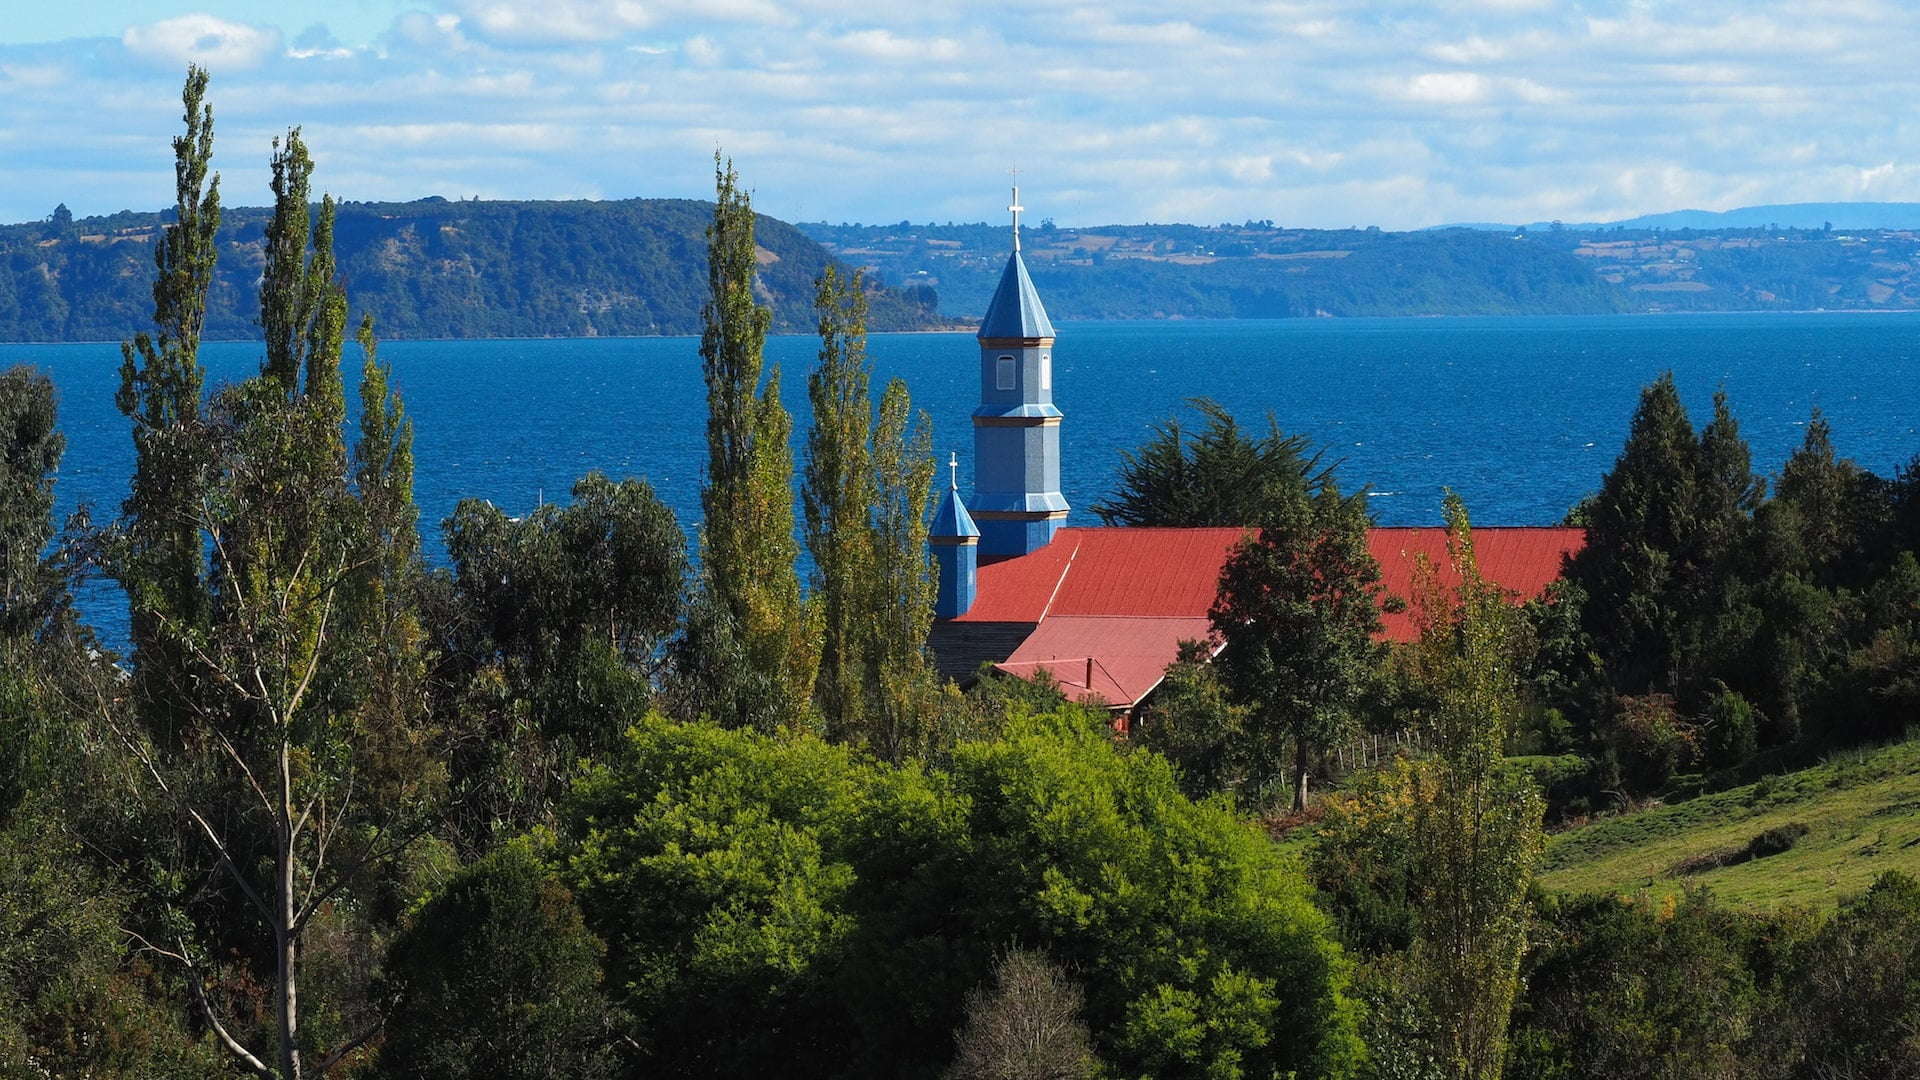 6 Reasons To Visit The Extraordinary Chiloe Island | Above Us Only Skies